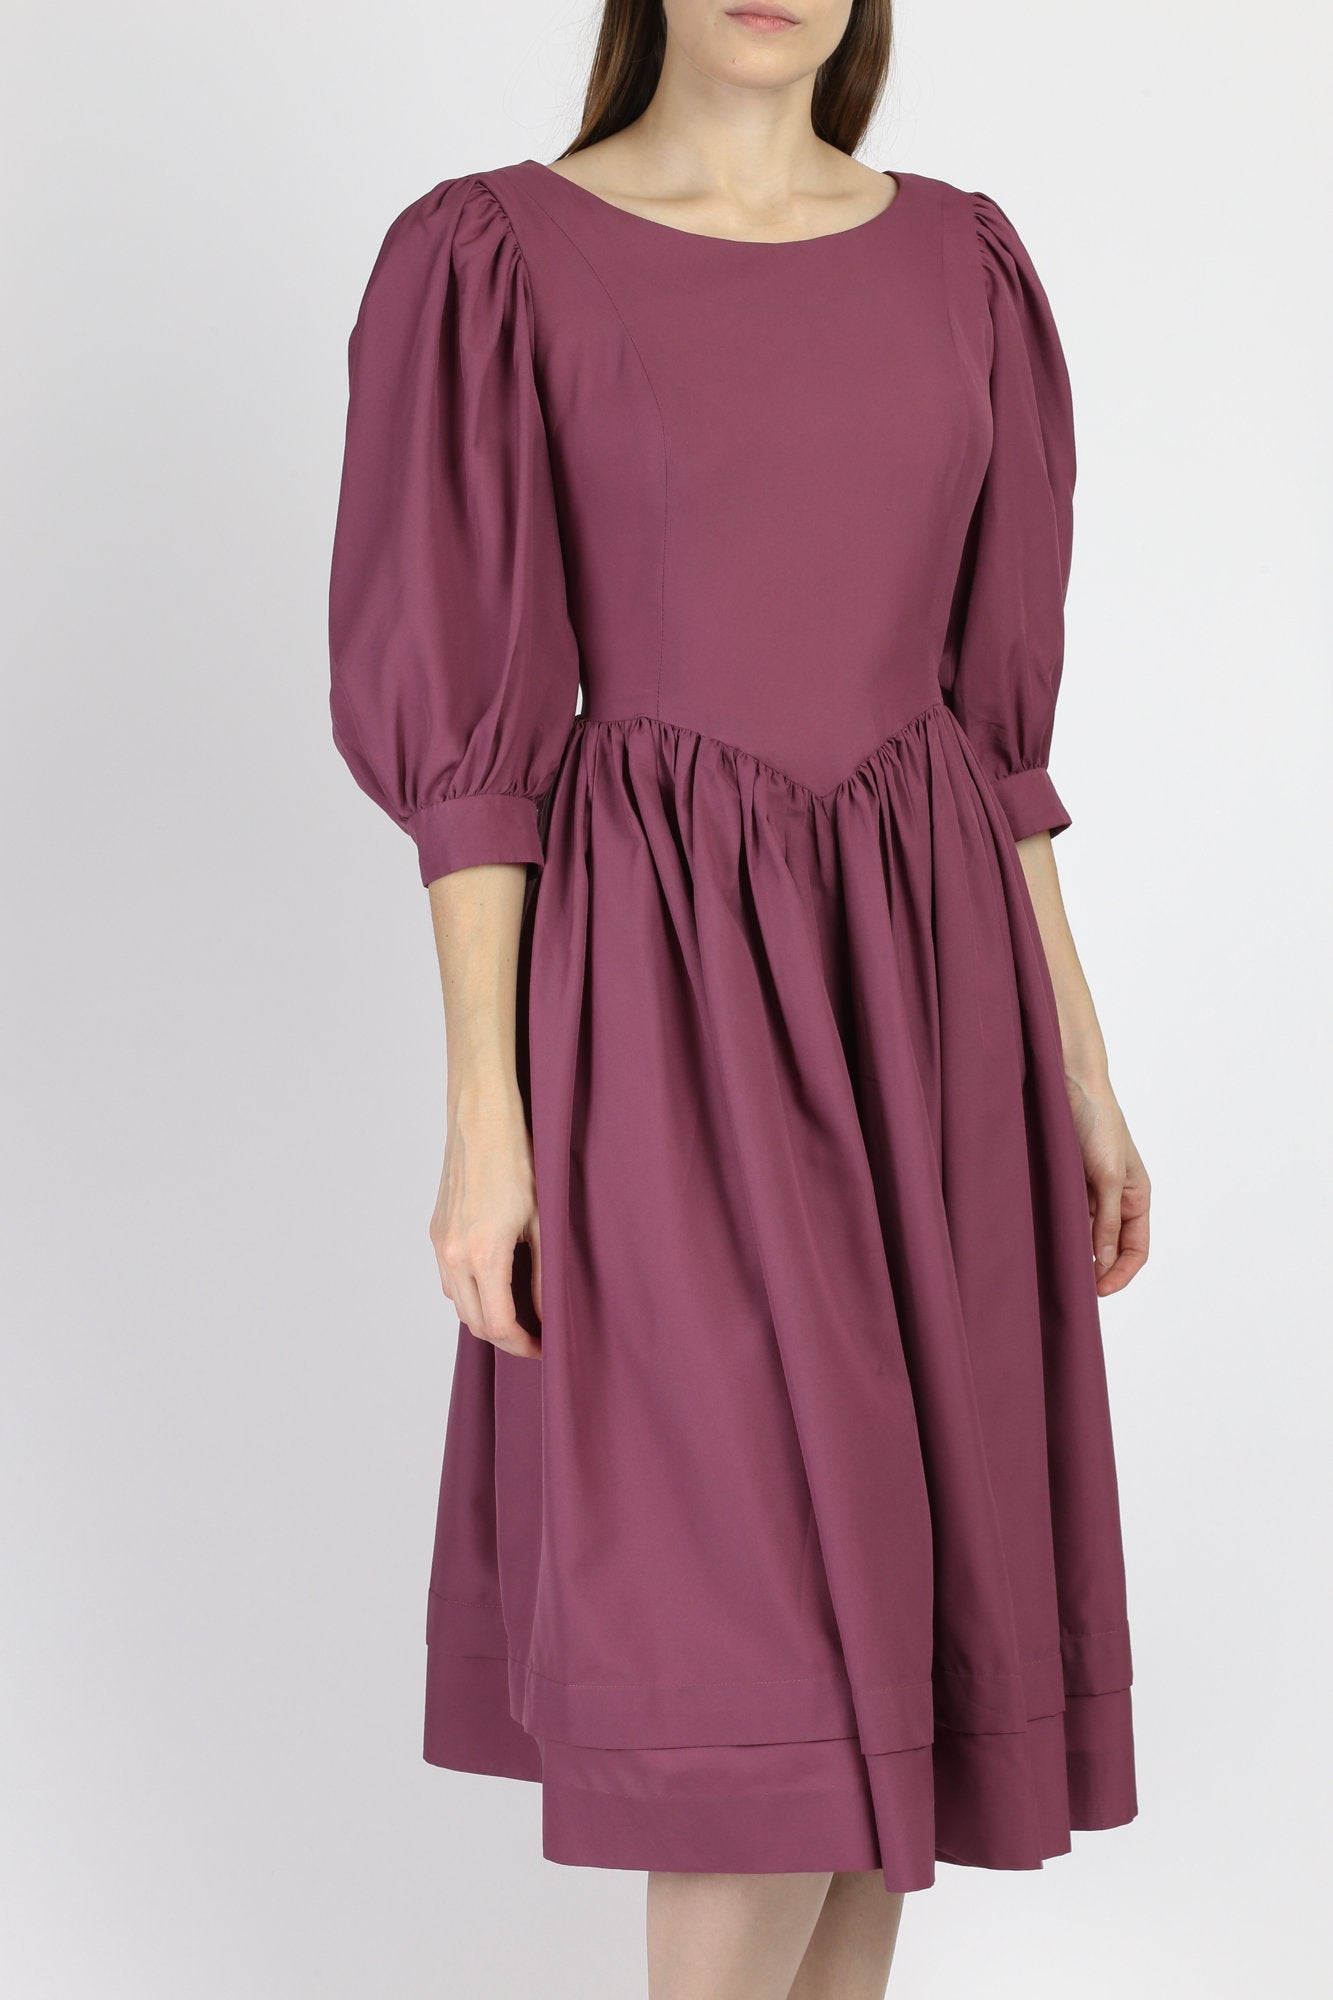 Vintage Purple Puff Sleeve Midi Dress - Extra Small